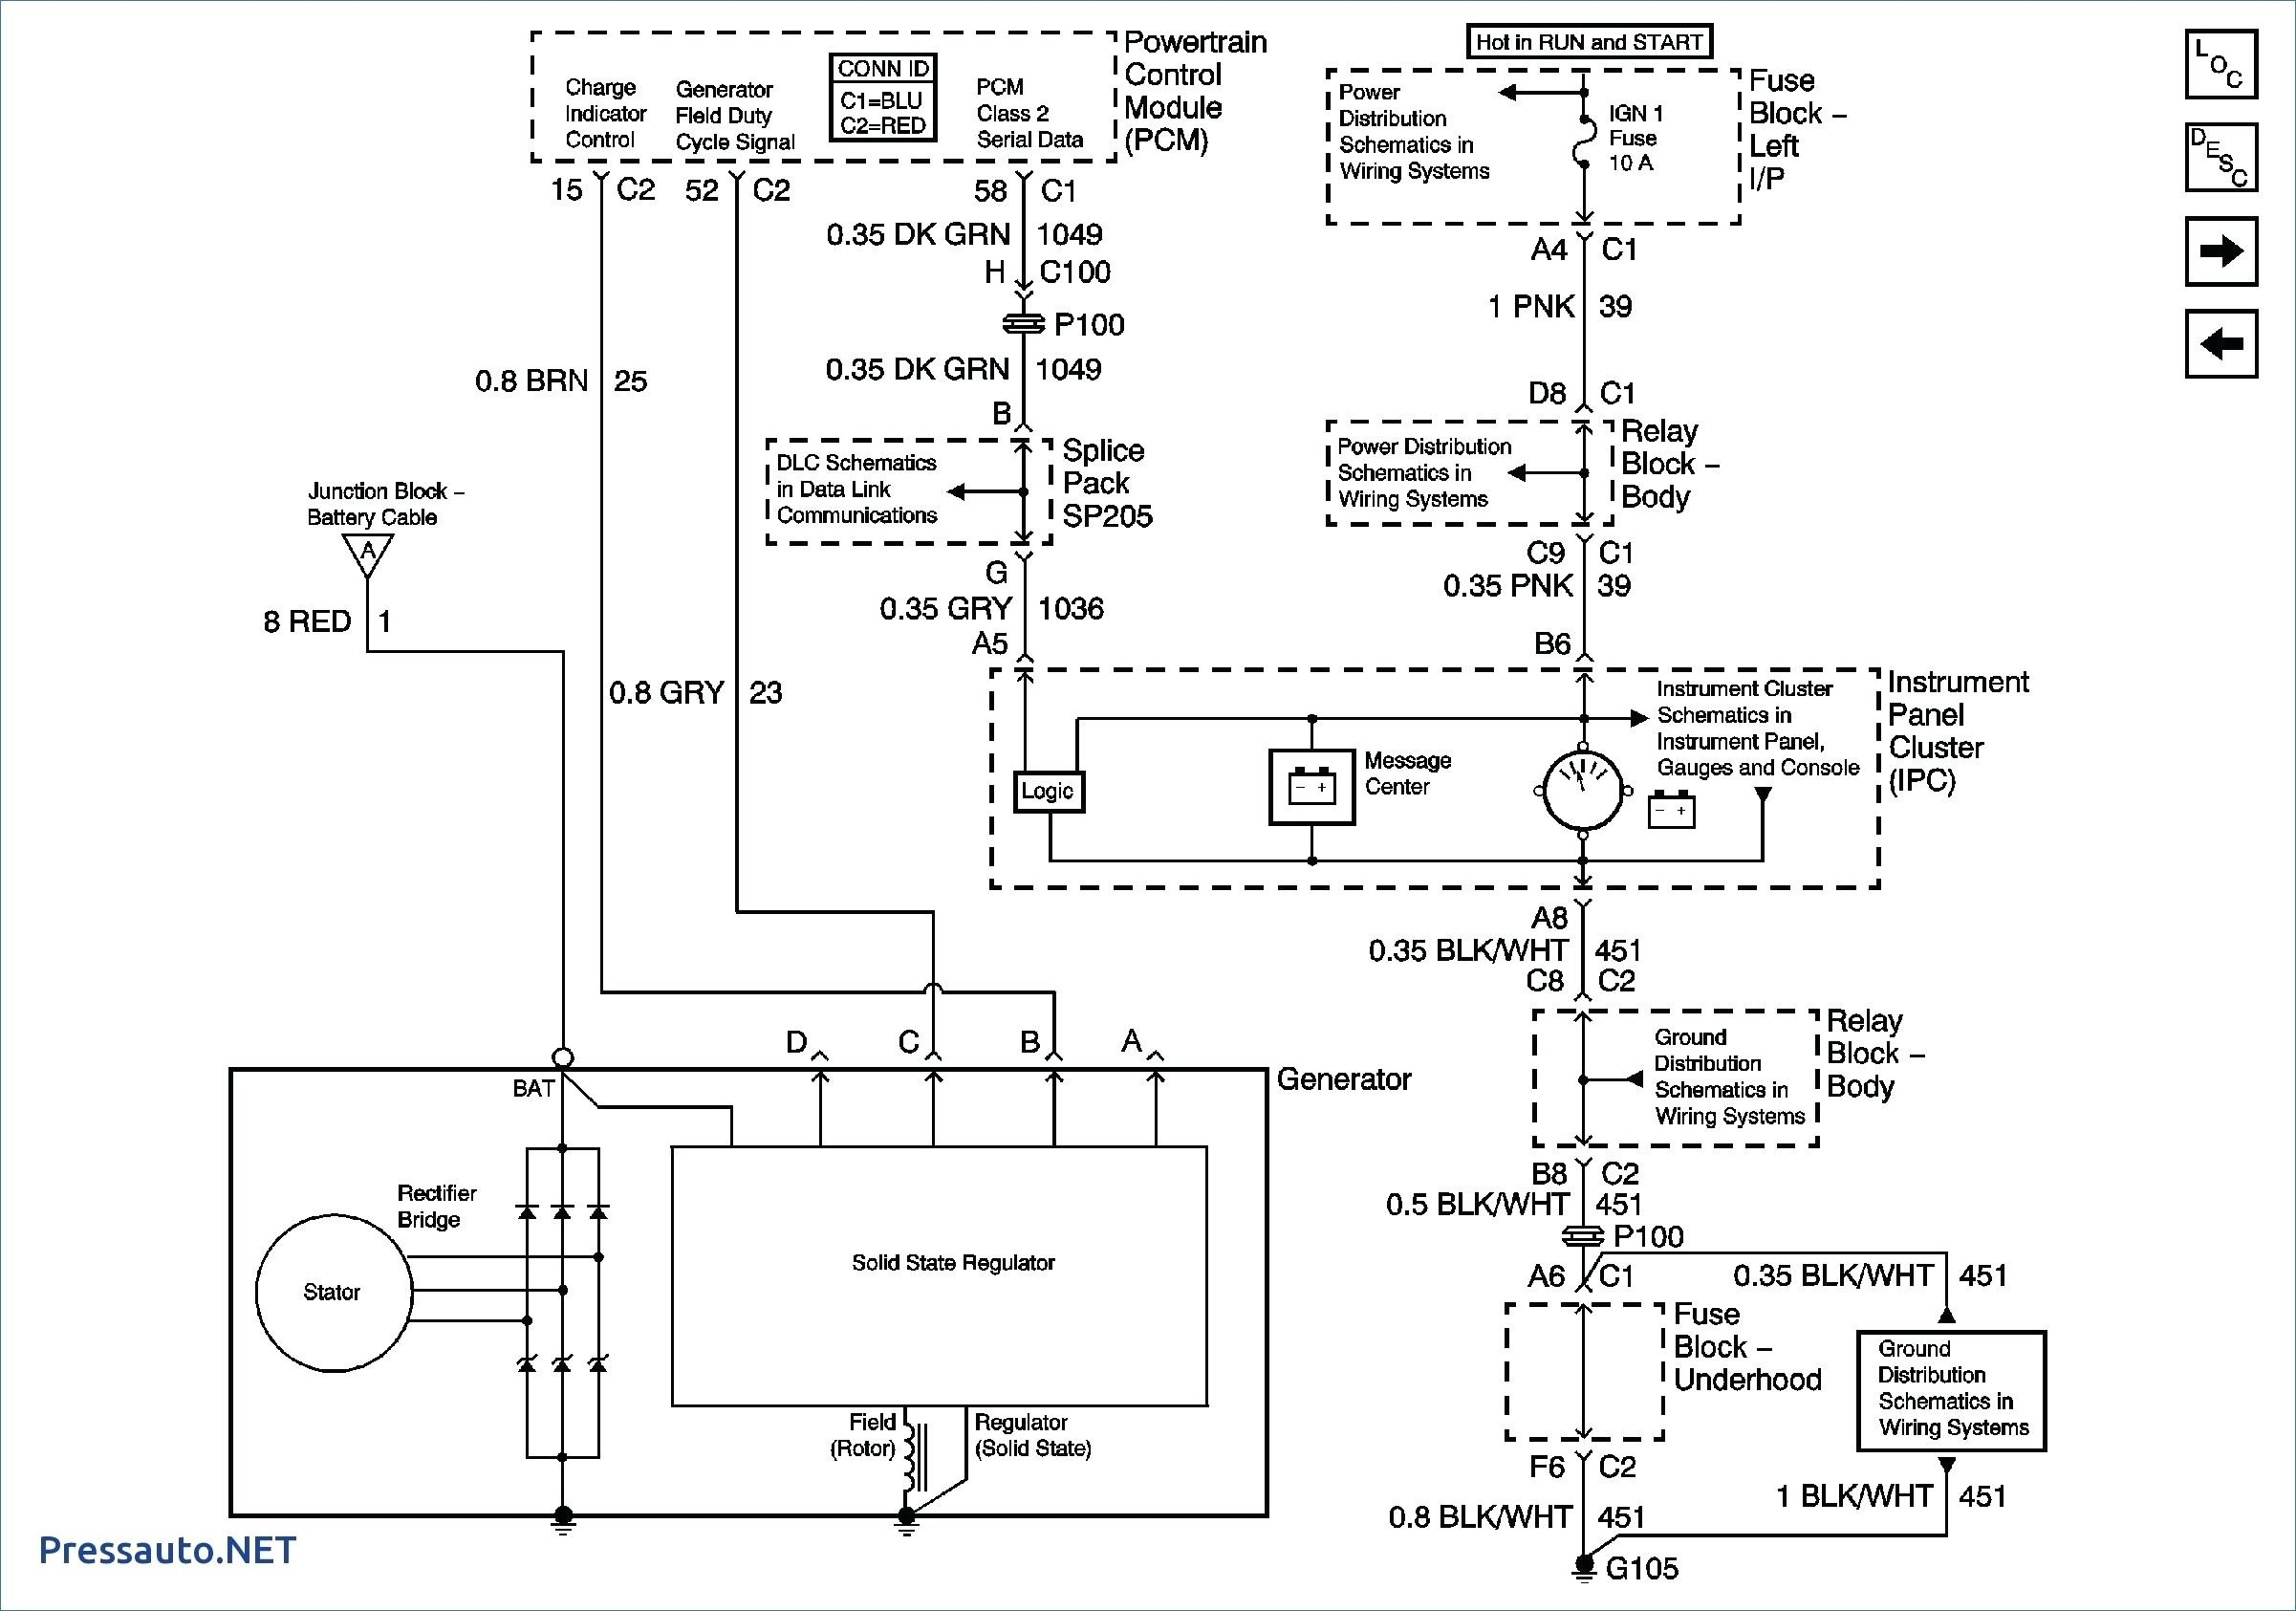 2 Wire Alternator Wiring Diagram Simple Alternator Wiring Diagram Maker Diagrams Home Electrical Of 2 Wire Alternator Wiring Diagram